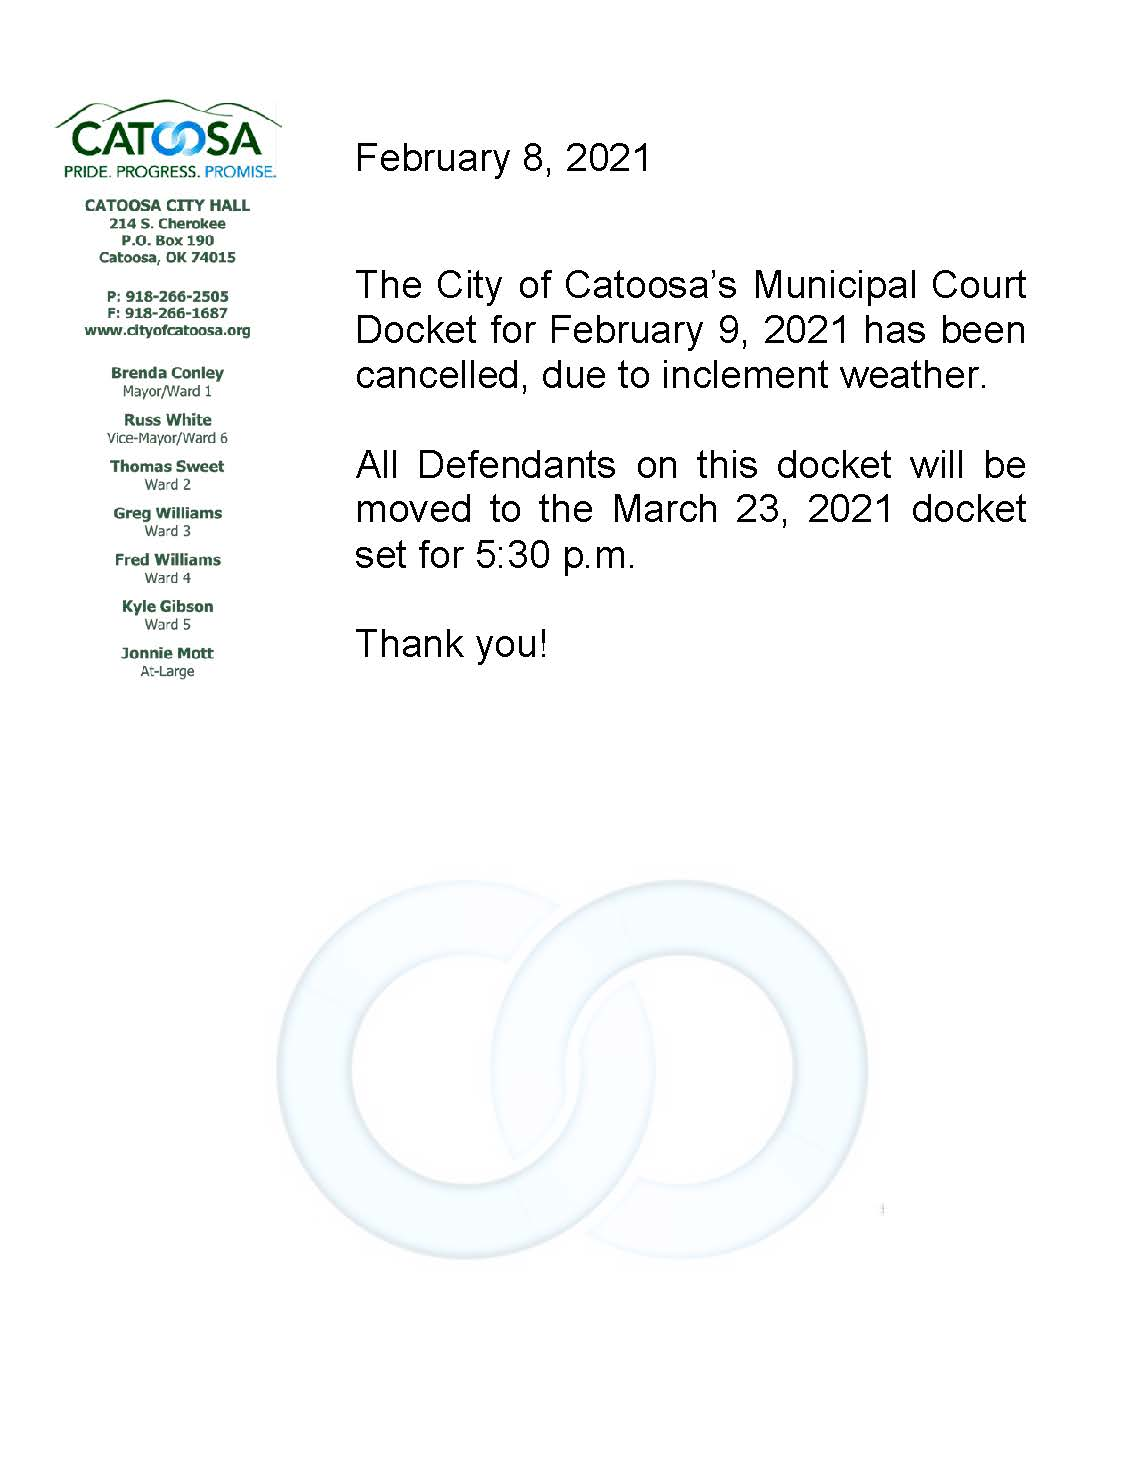 Municipal Court Closure